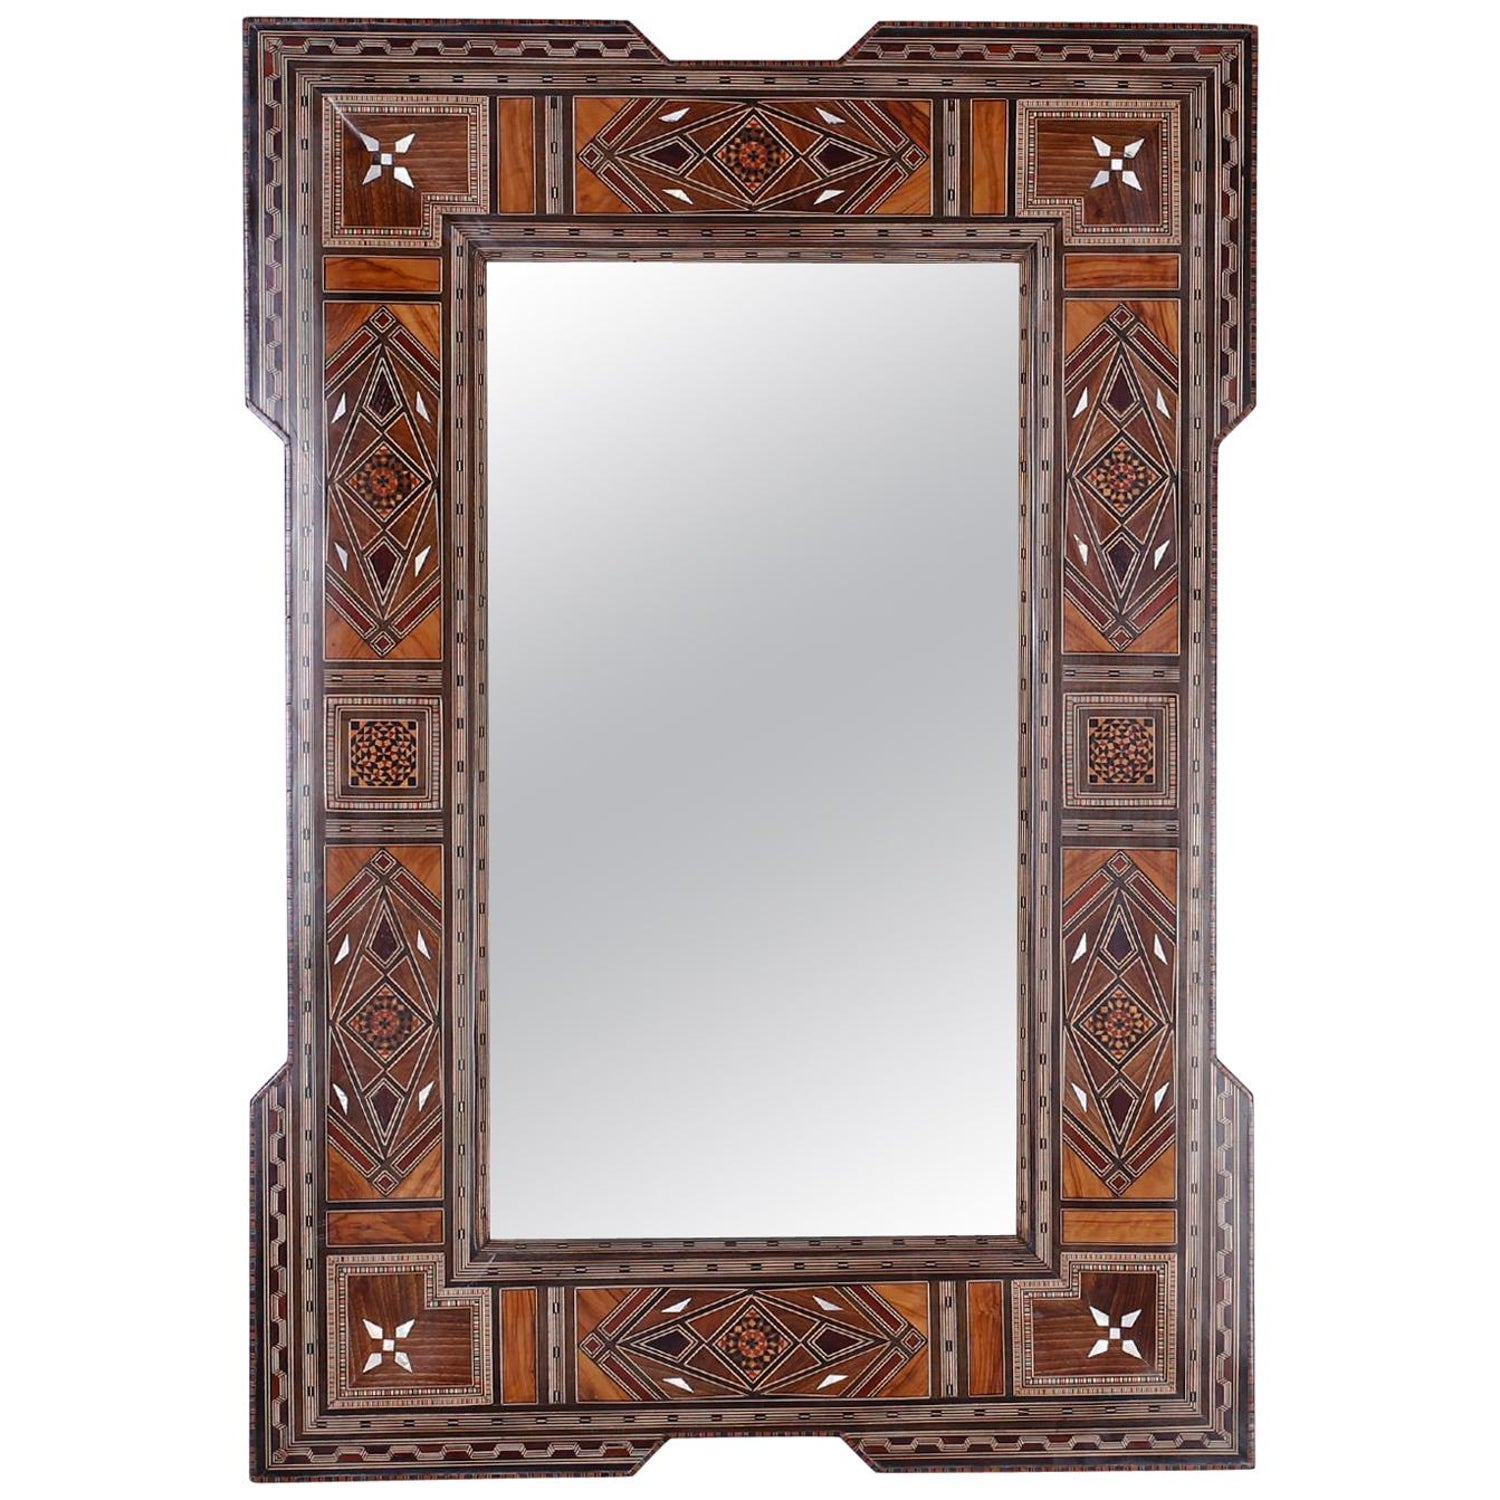 Syrian Mother Of Pearl Inlaid Wall Mirror At 1stdibs